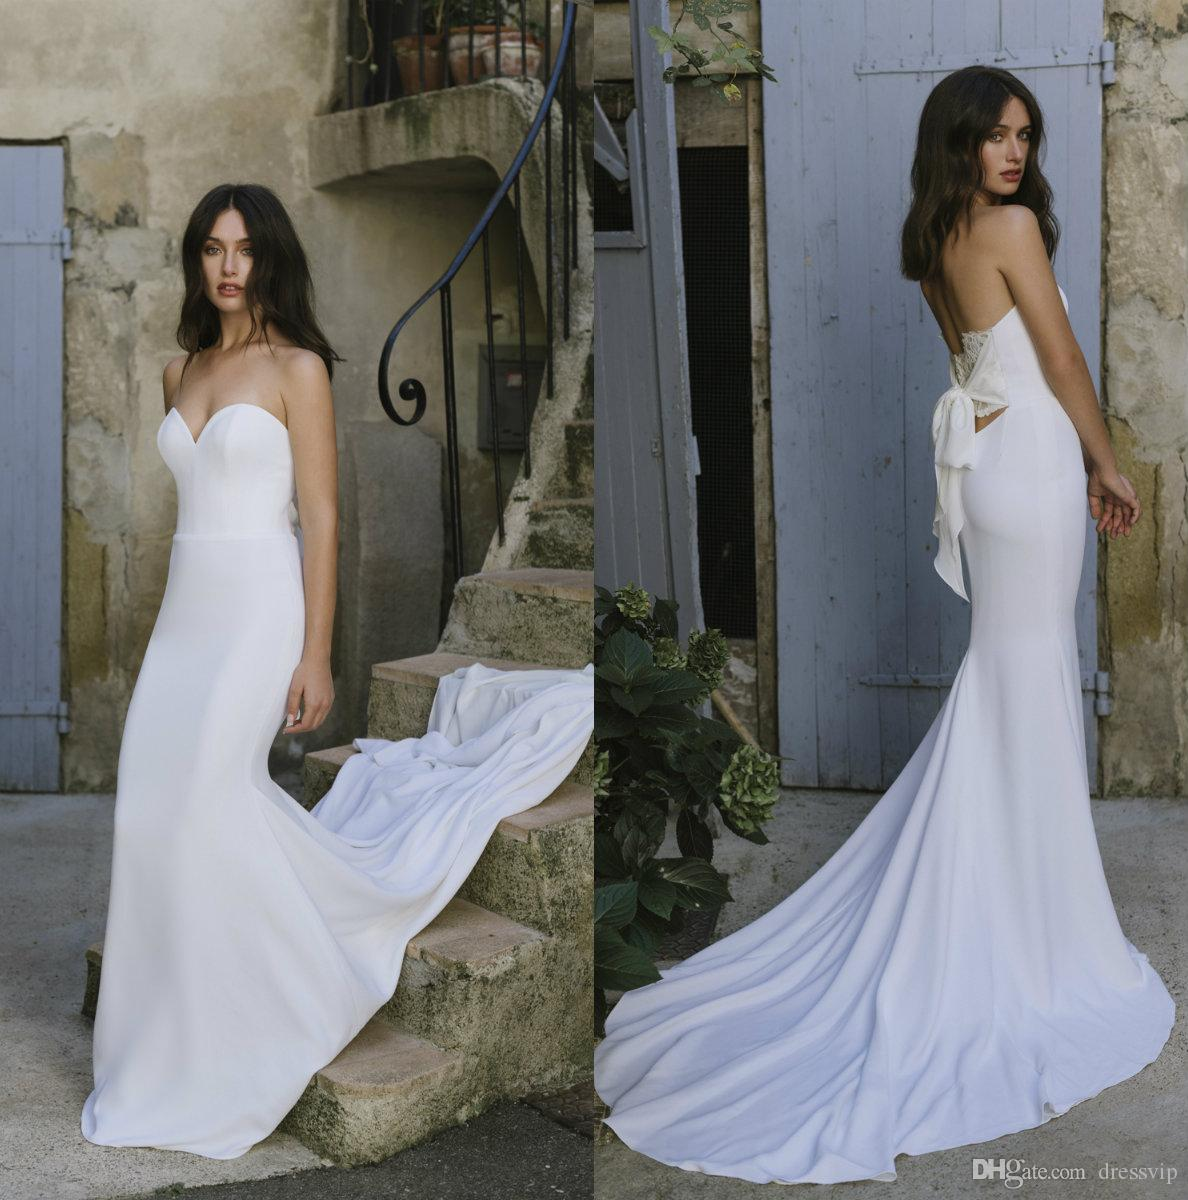 95cdda21a8 2019 Lihi Hod Wedding Dresses Sweetheart Court Train Sexy Lace Back  Sleeveless Soft Satin Mermaid Wedding Dress Plus Size Bridal Gowns Cheap Wedding  Gowns ...